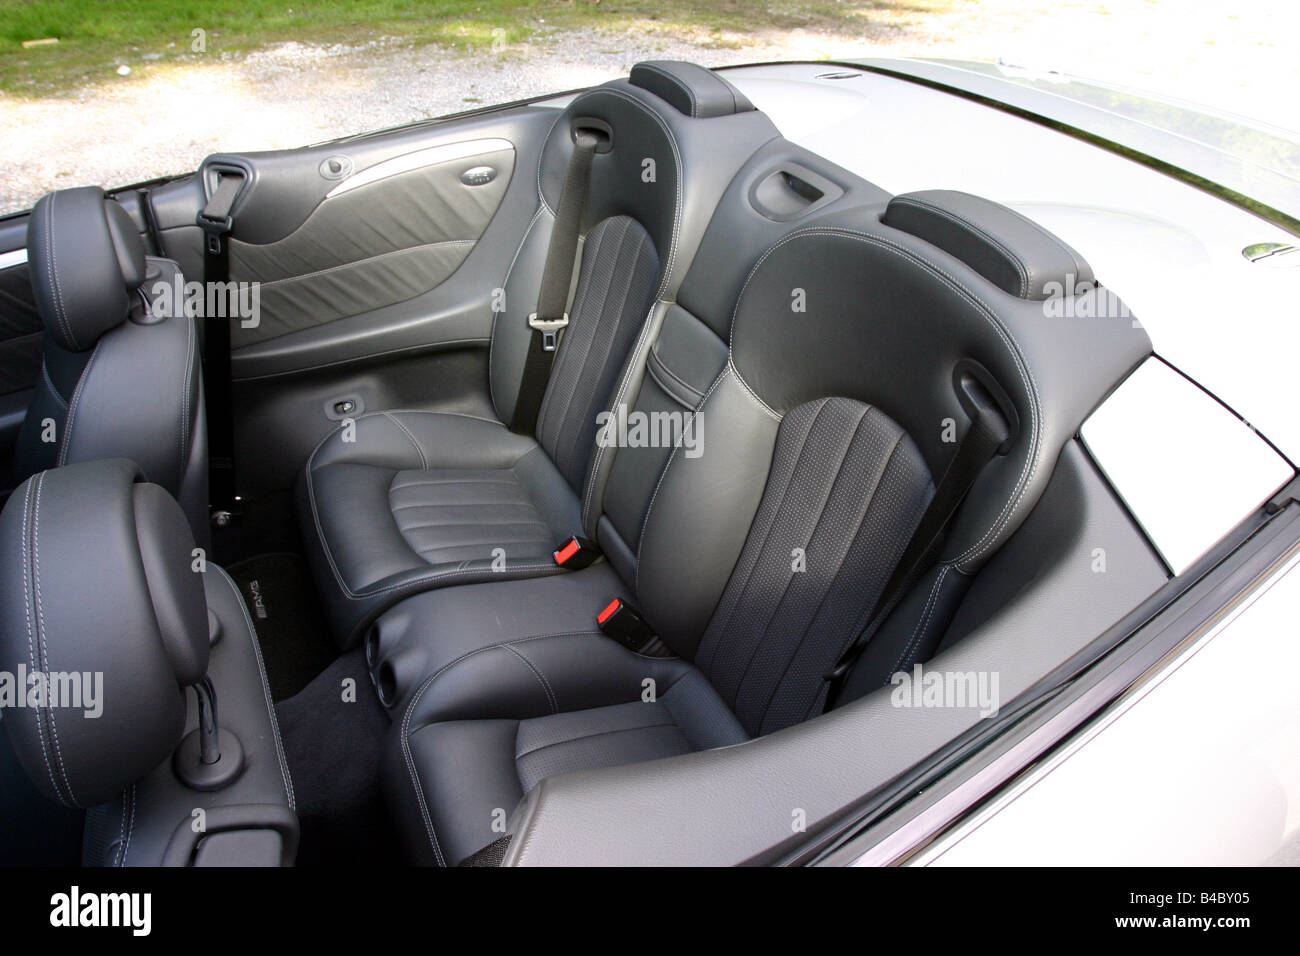 car mercedes clk 55 amg convertible model year 2003 silver open stock photo royalty free. Black Bedroom Furniture Sets. Home Design Ideas